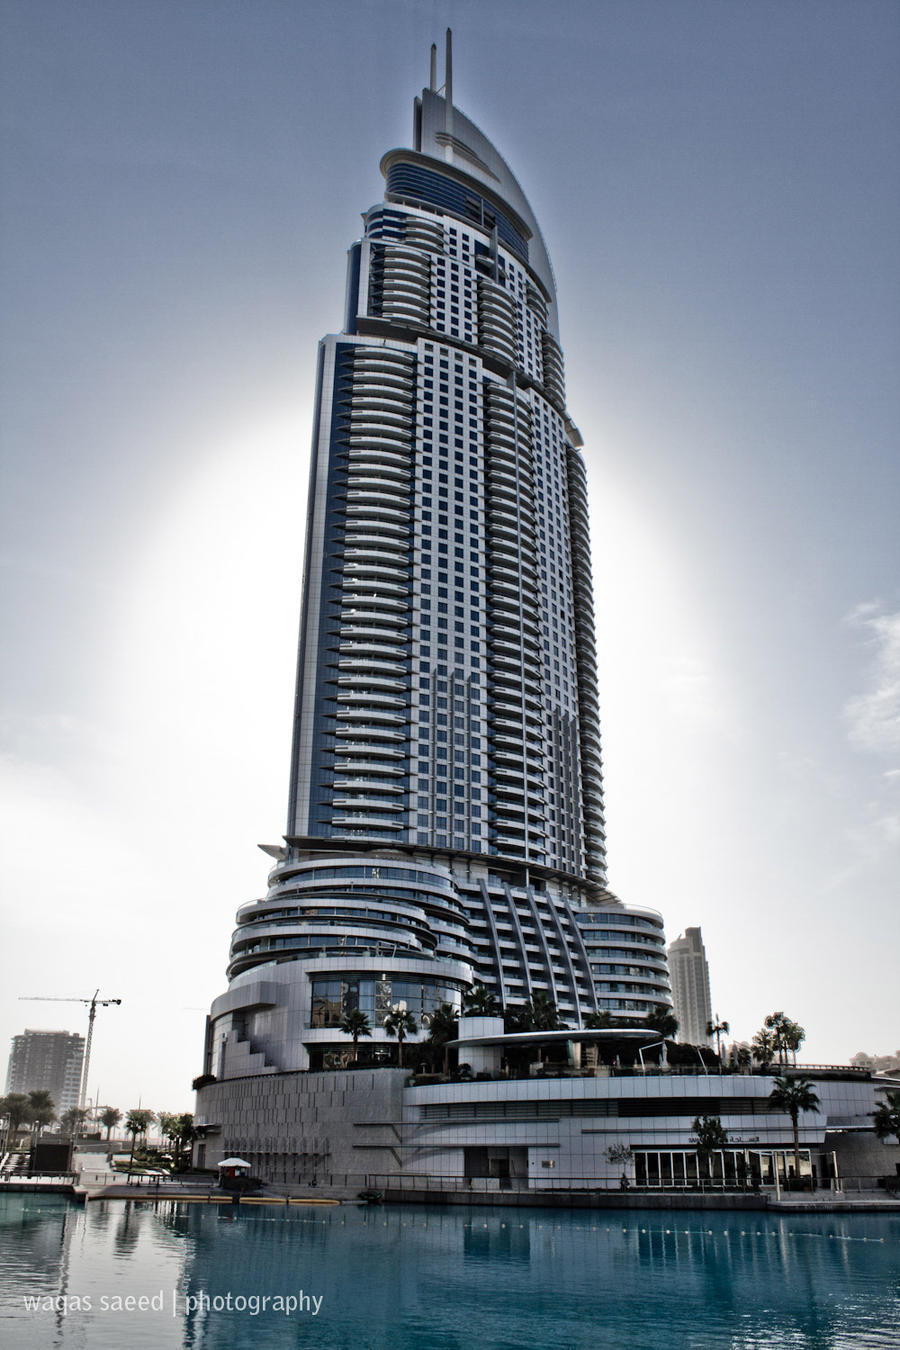 address hotel dubai by pixmestudio on deviantart